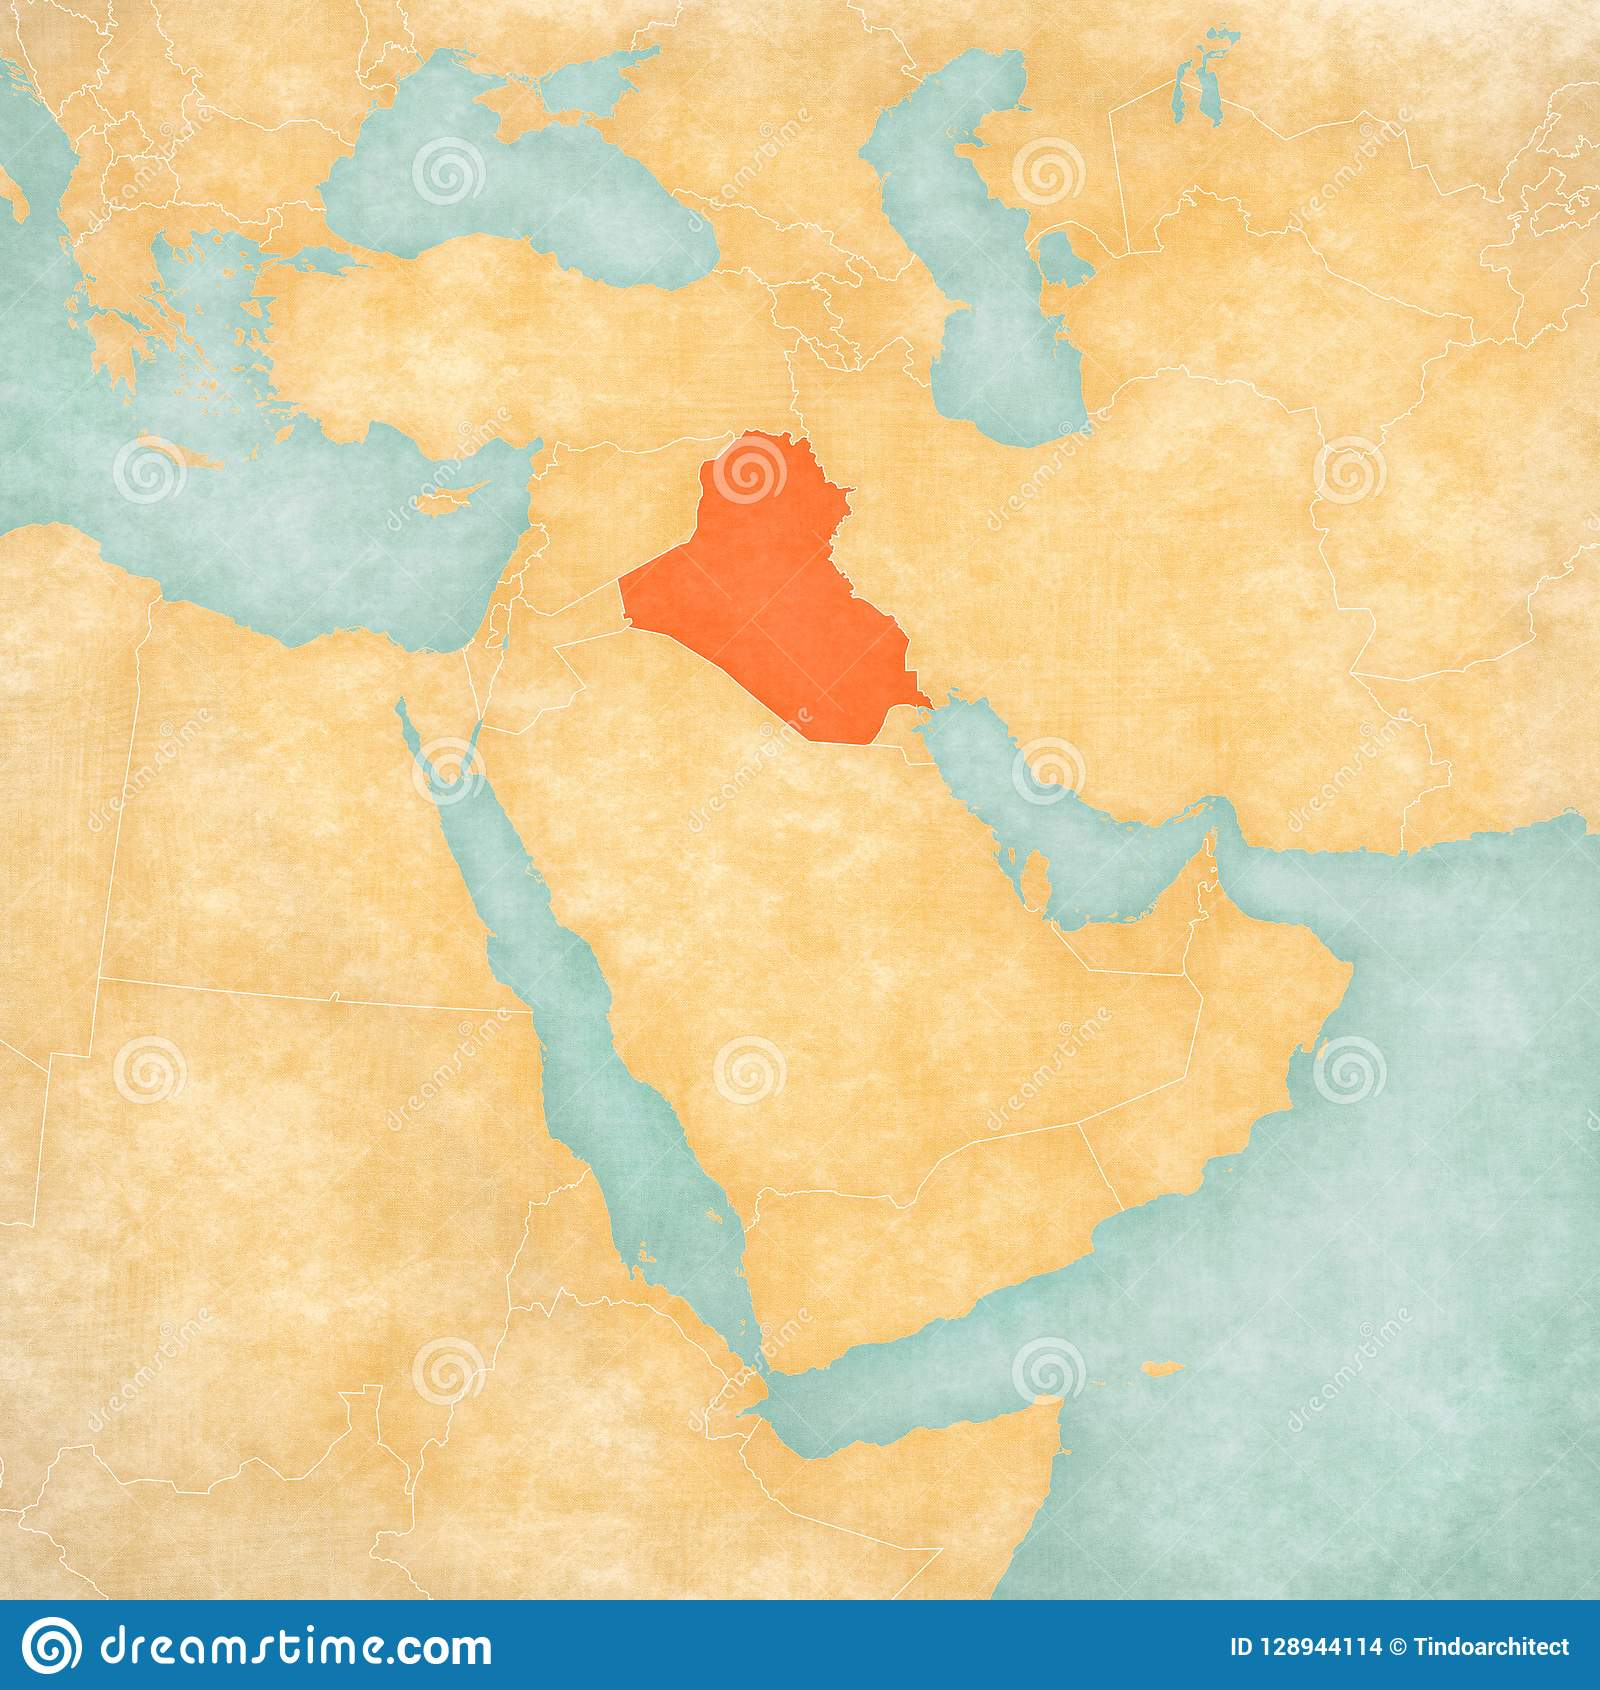 Map of Middle East - Iraq stock illustration  Illustration